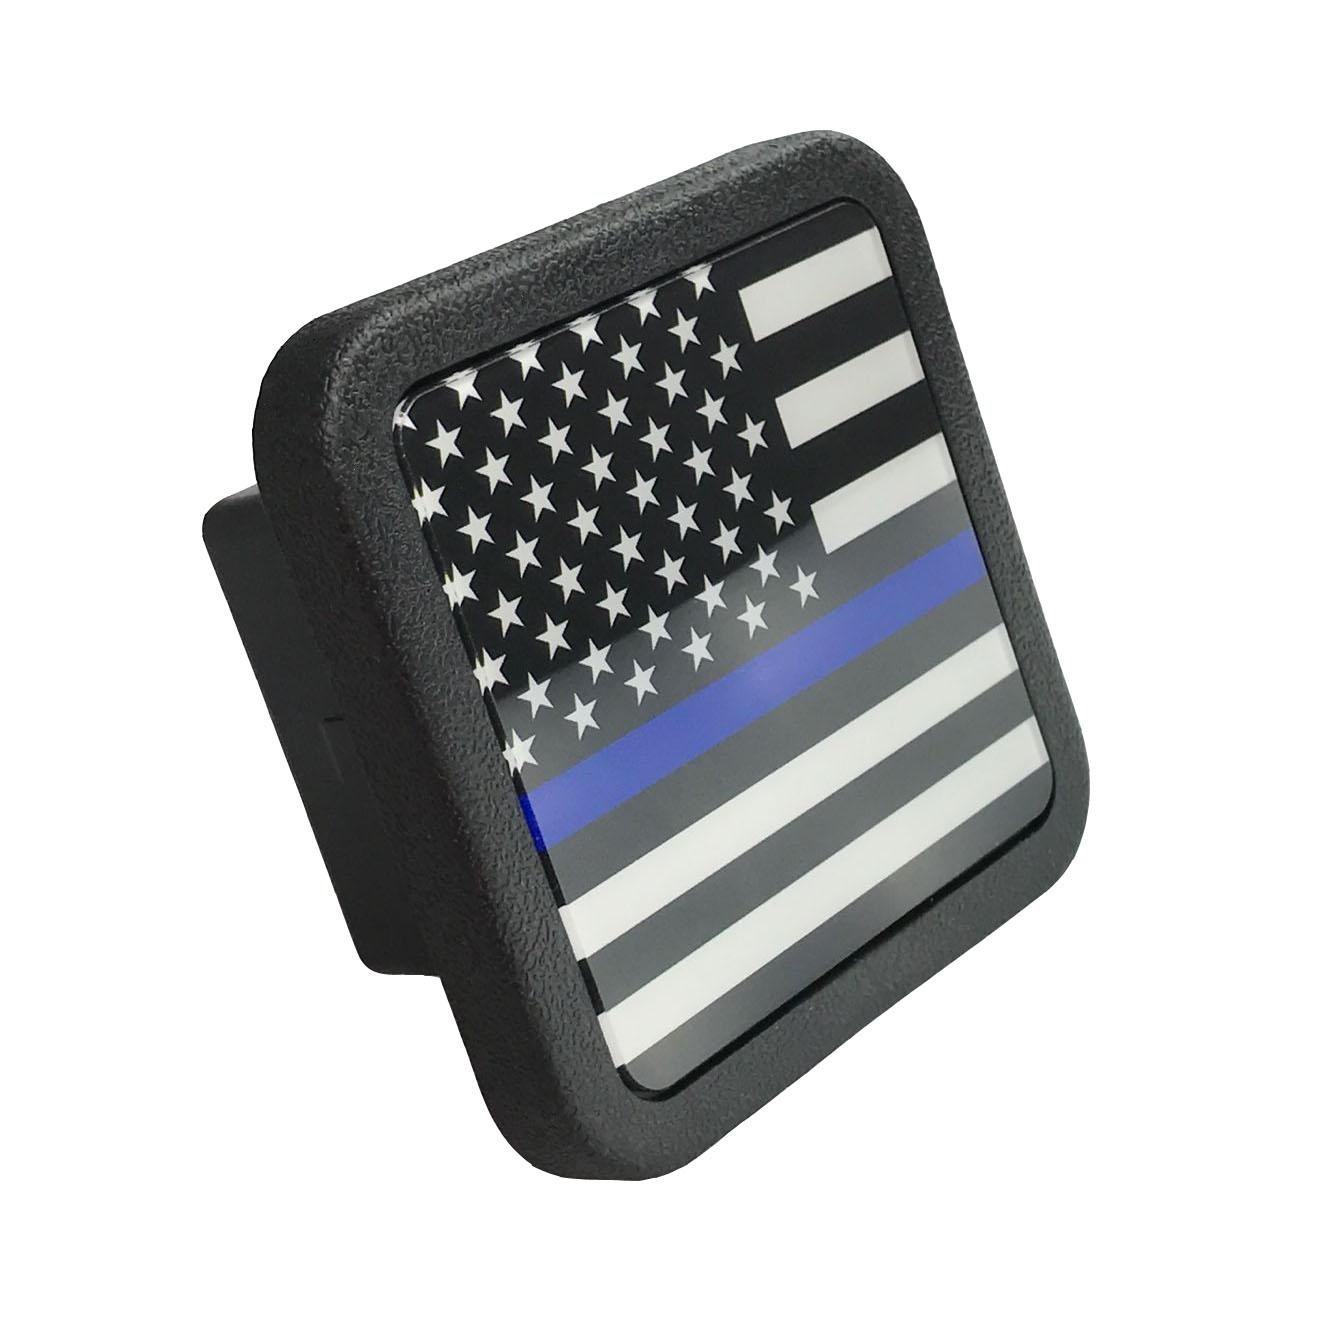 Free exercise Trailer Hitch Cover Tube Plug Insert (Fits 2'' Receivers, Thin Blue Line) by Free exercise